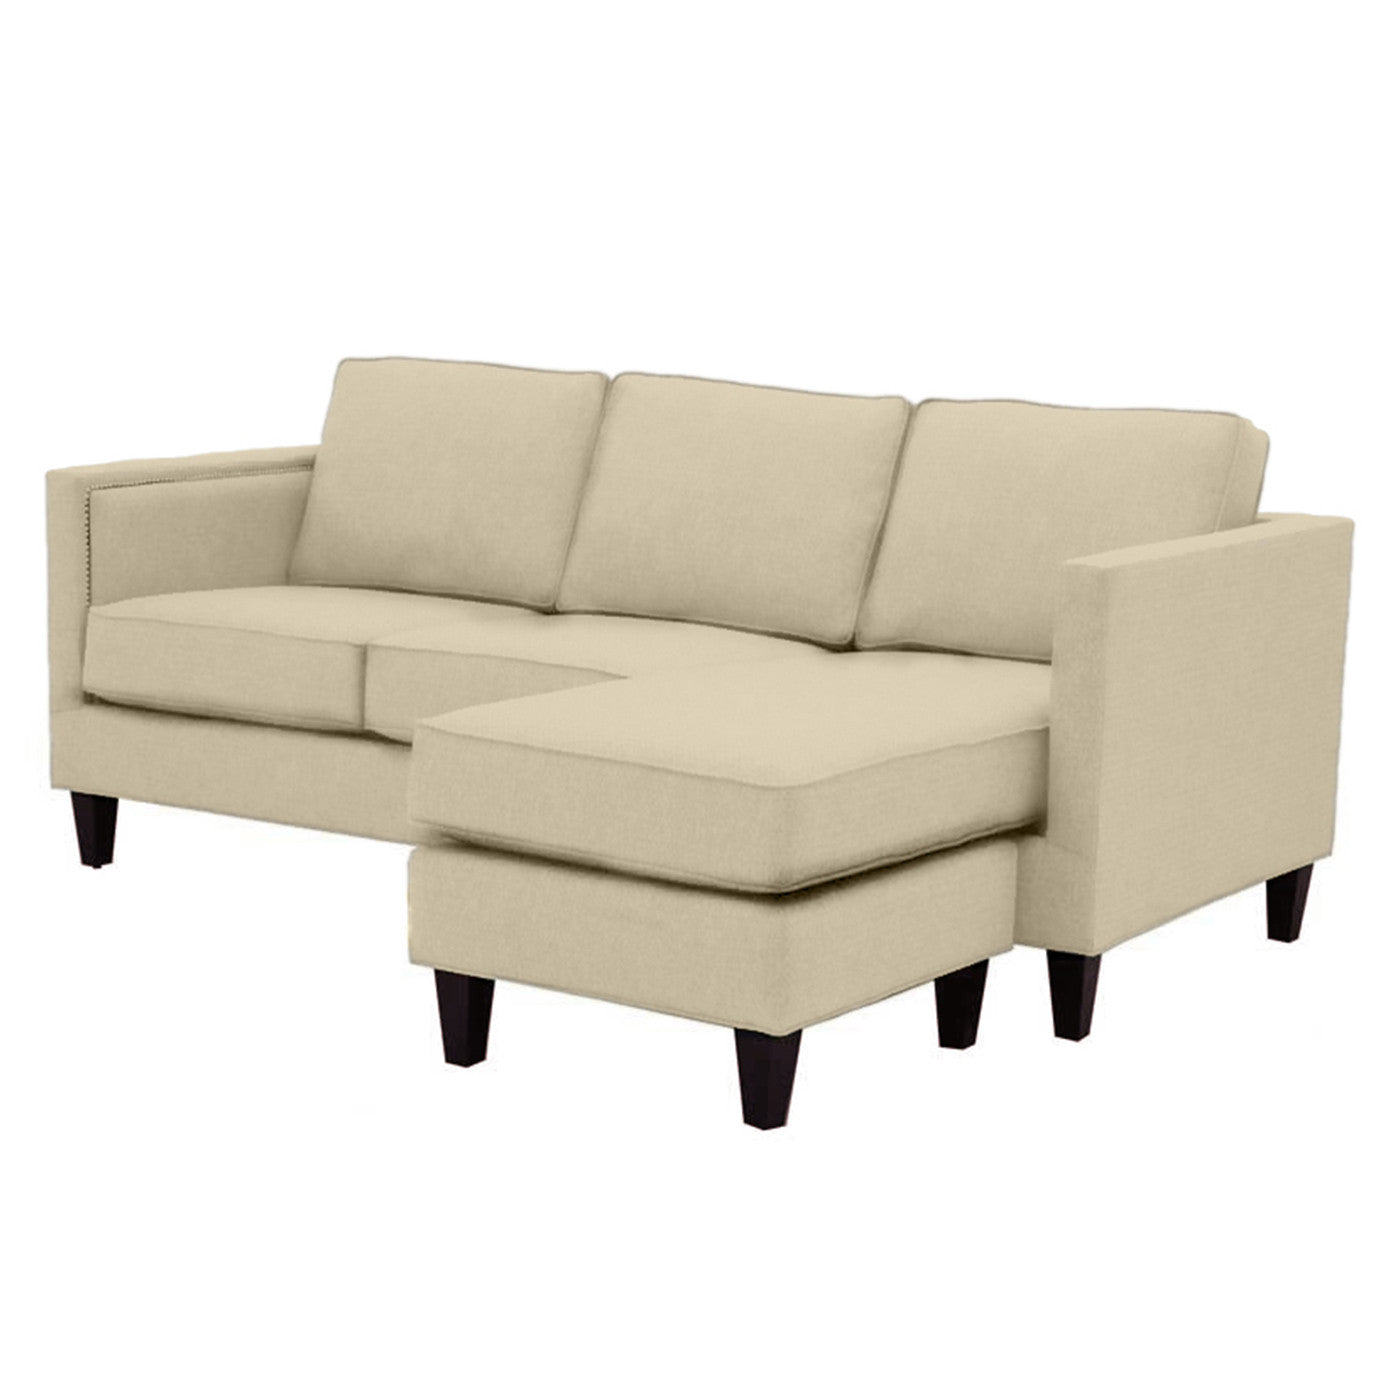 Contemporary Reversible Chaise Sofas Apt2B